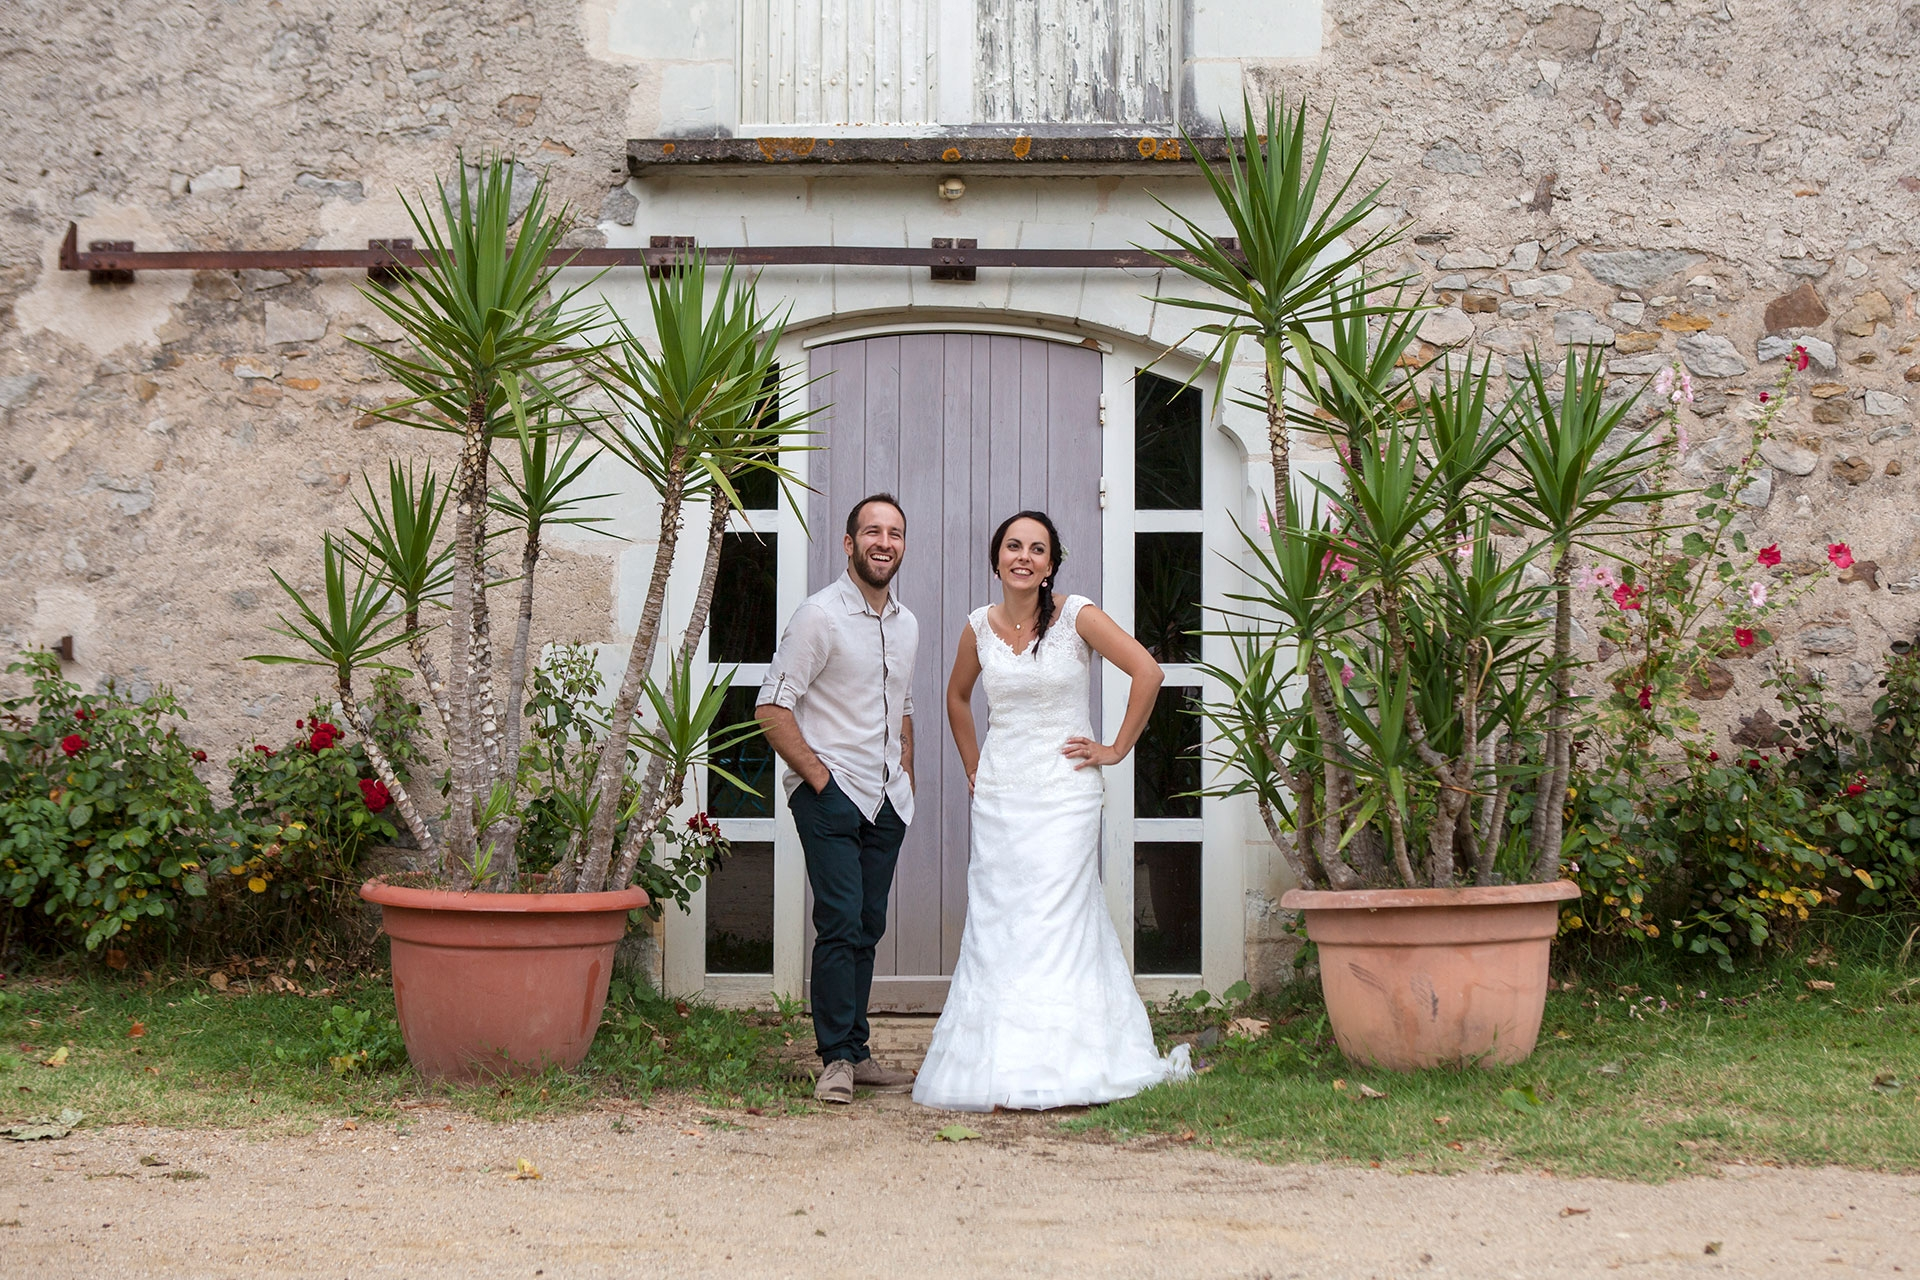 particuliers-evenements-mariage-oui-carla&jeremy-21